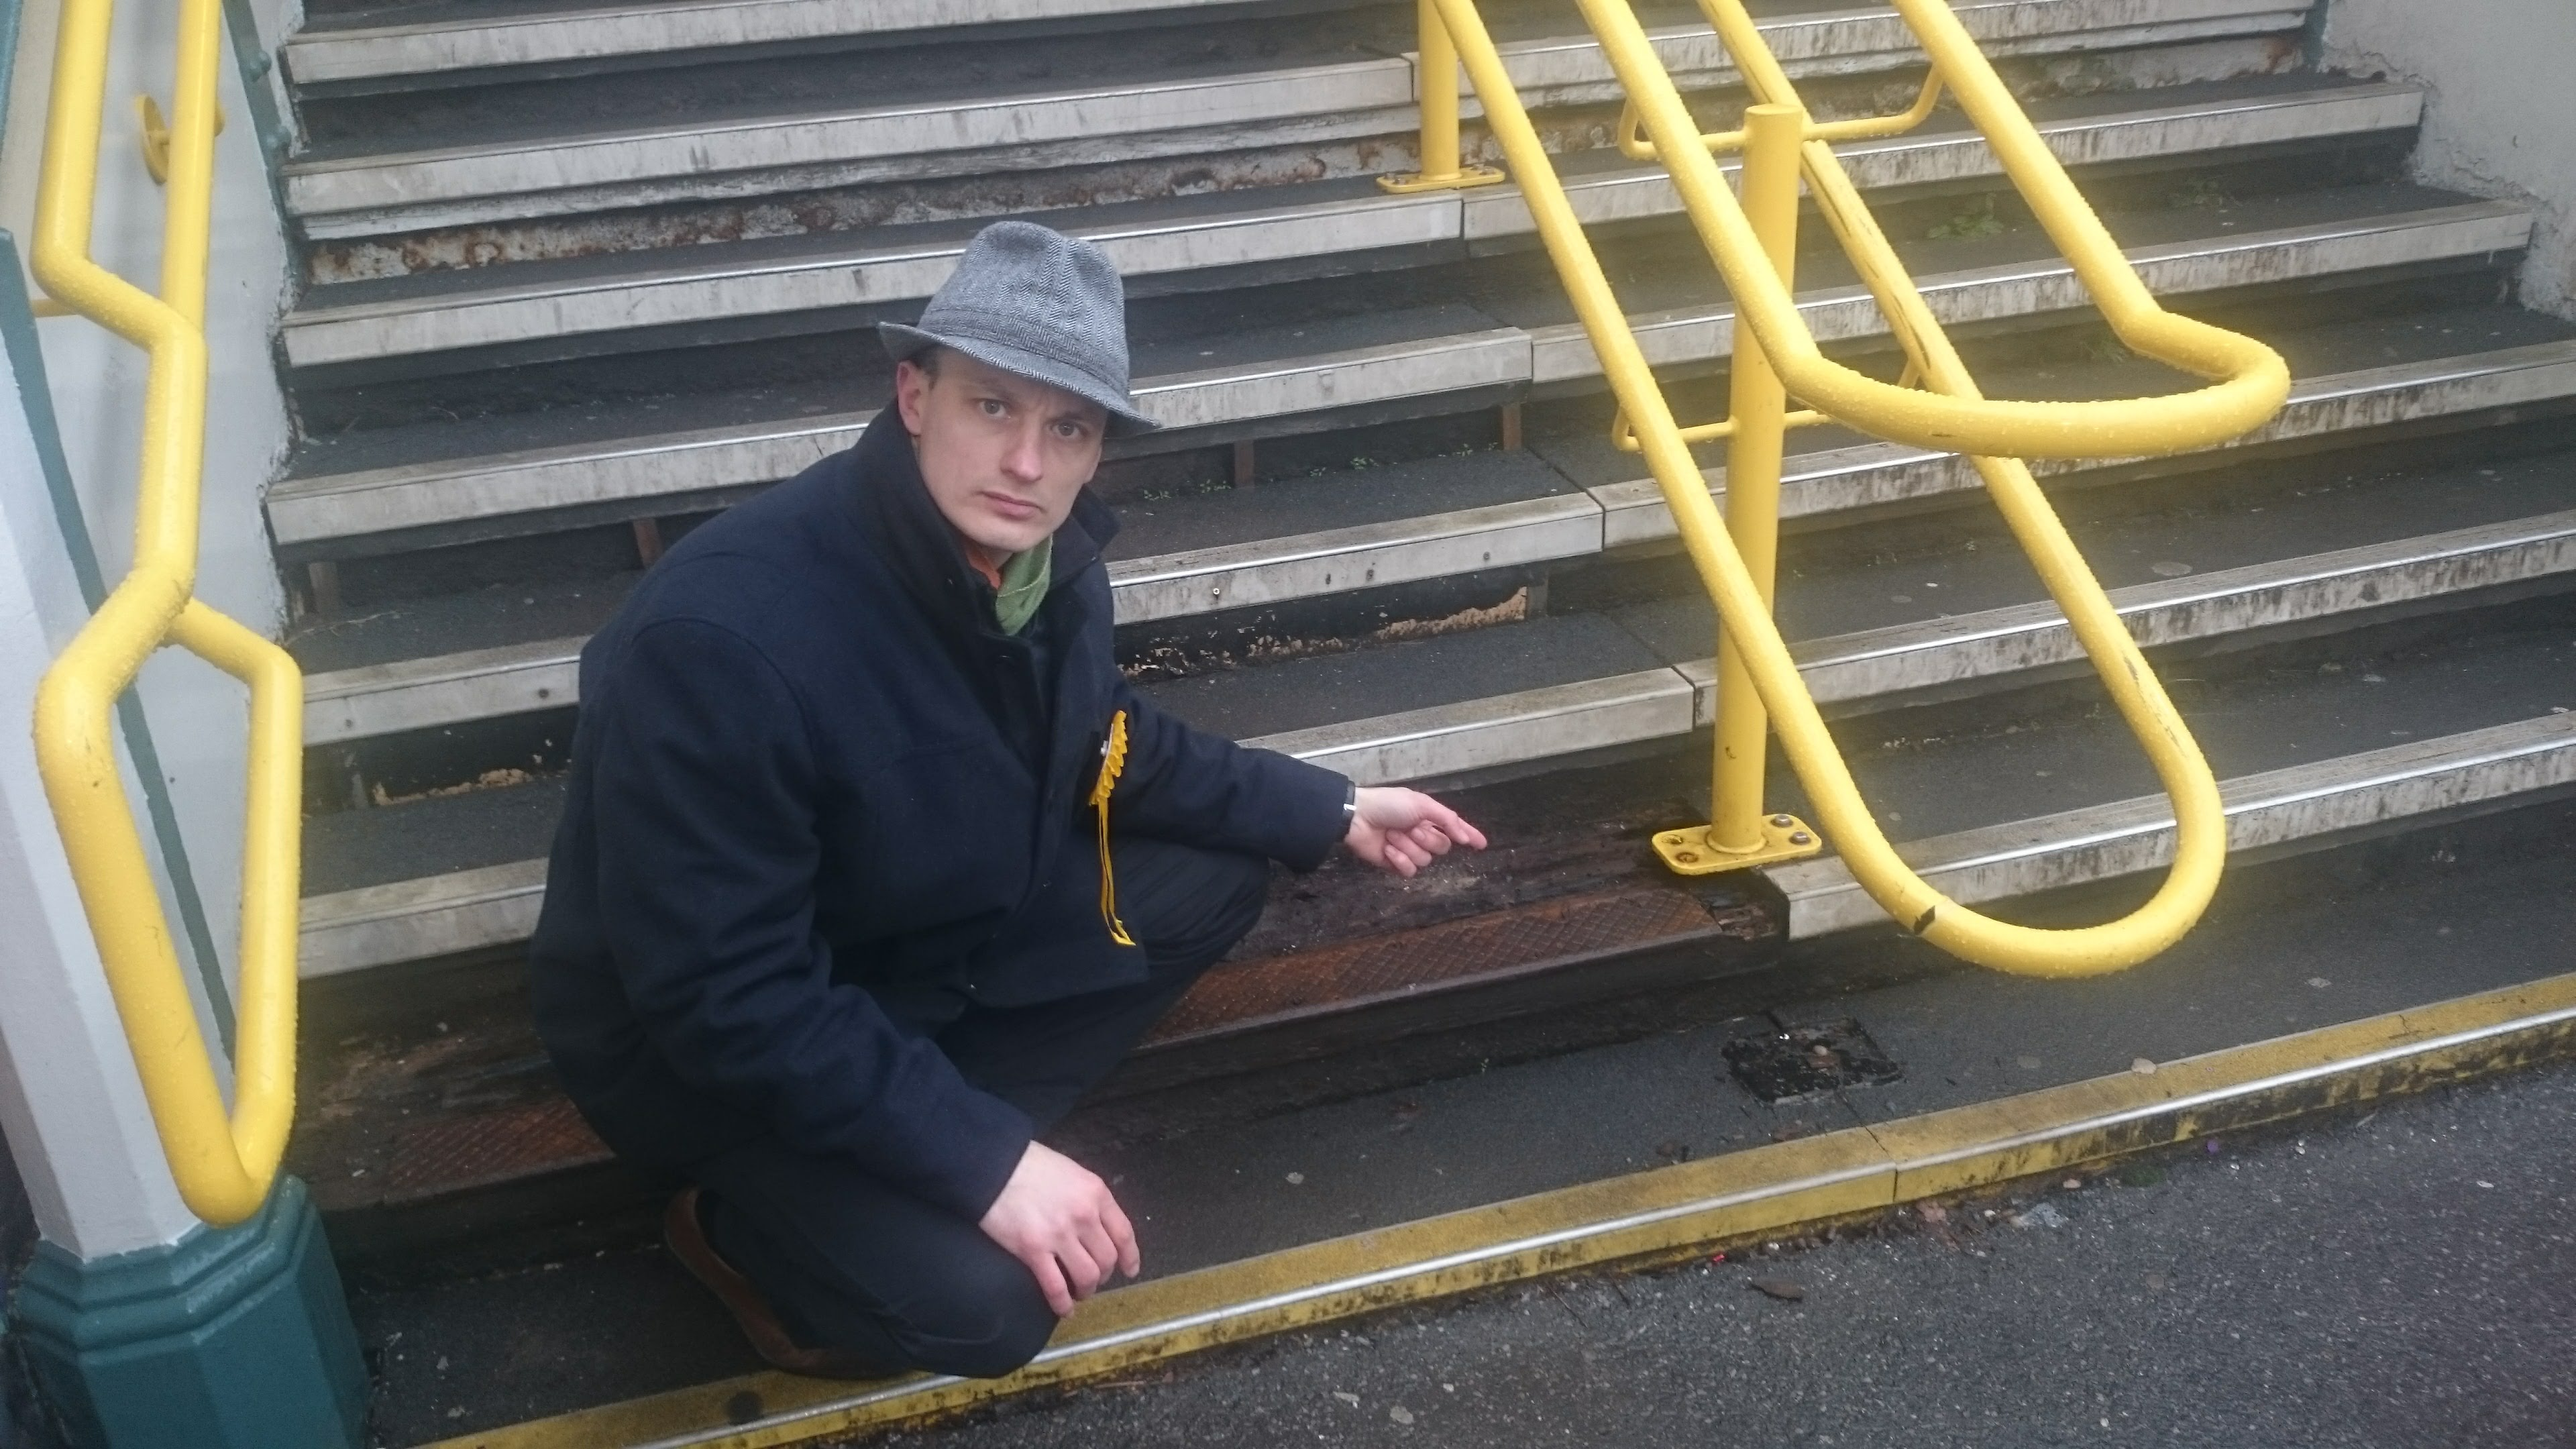 Wandsworth Common station stair hazard with Jon Irwin